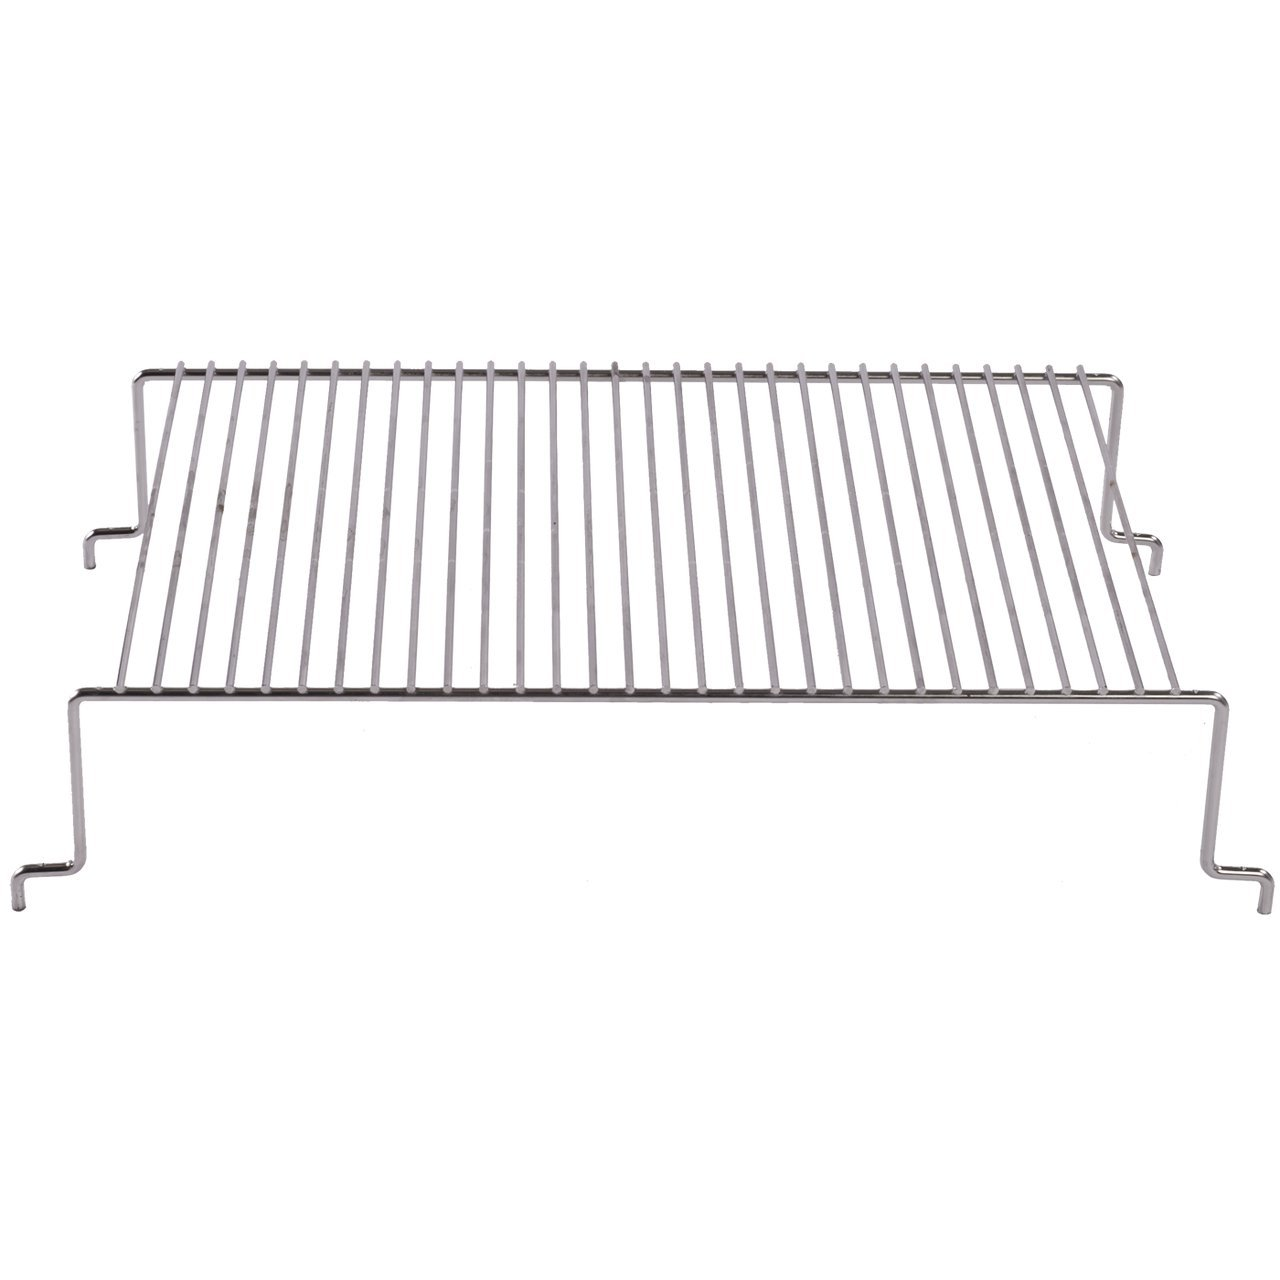 PK Grills PK99020 Raised Cooking Grid, for use on the Standard Hinged Cooking Grid